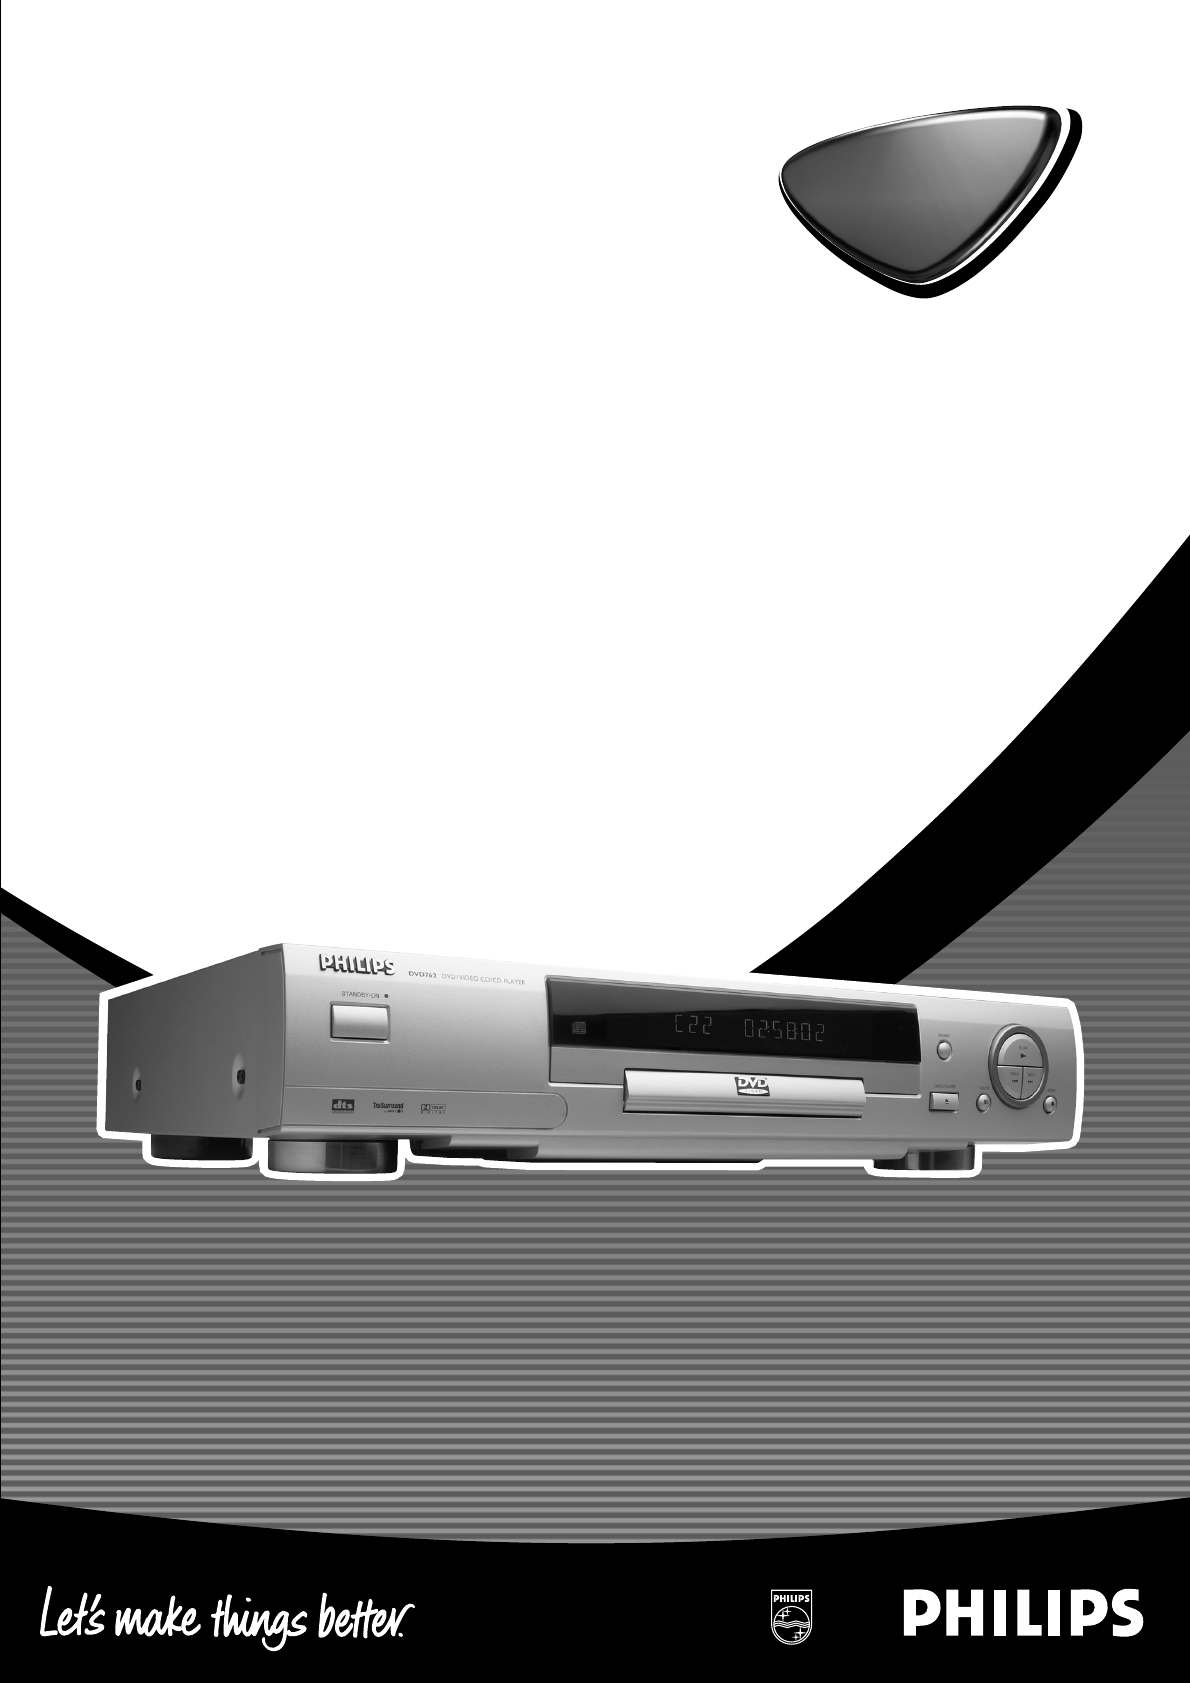 Philips Dvd Player Dvd